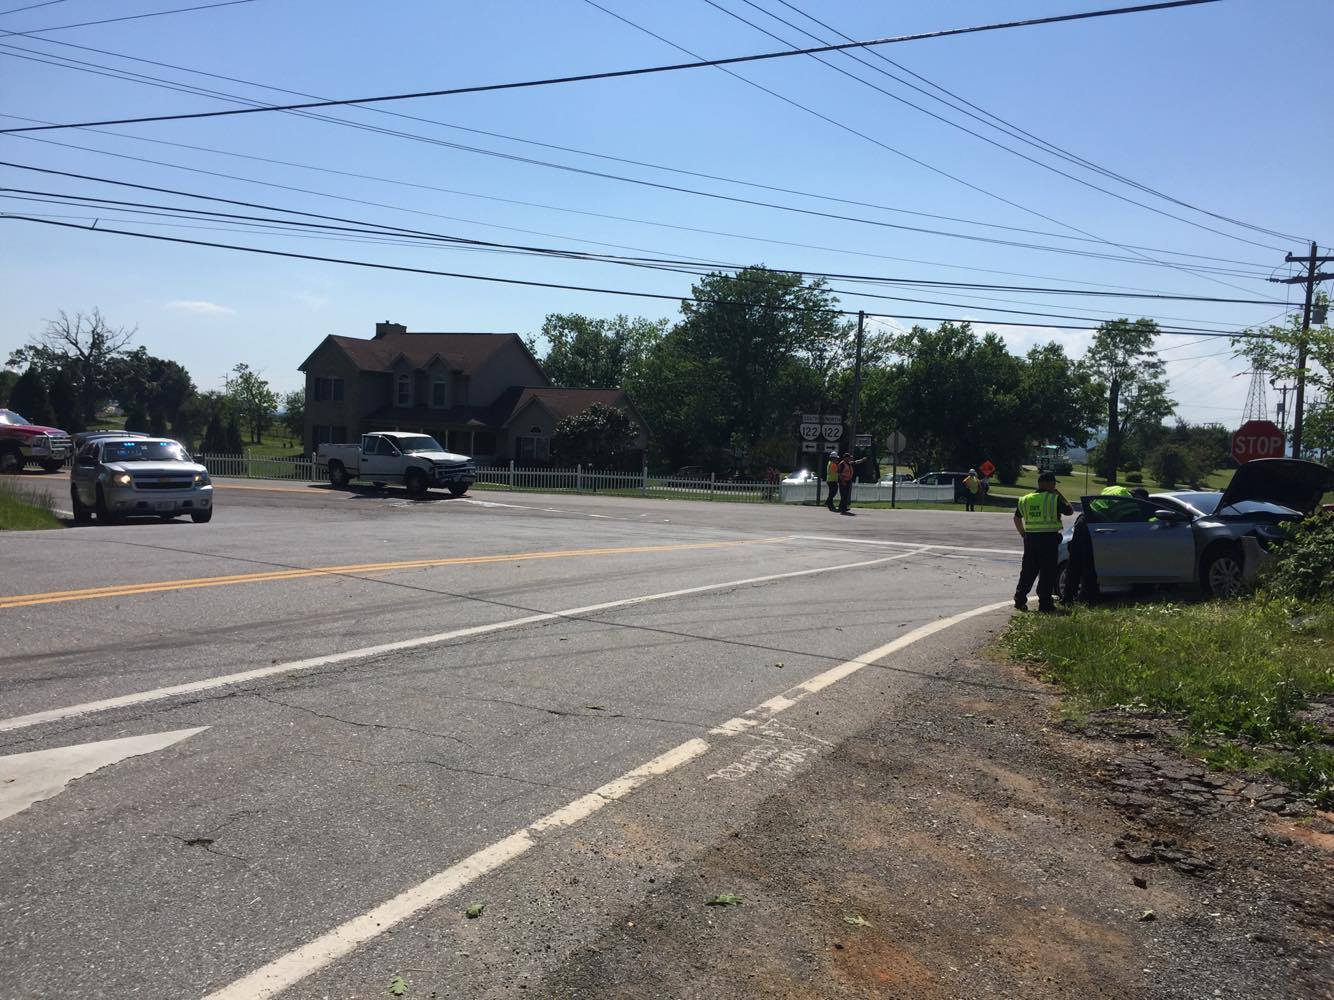 Several vehicles were involved in an accident at the intersection of Centerville Rd. and Route 122 (Photo: WSET)